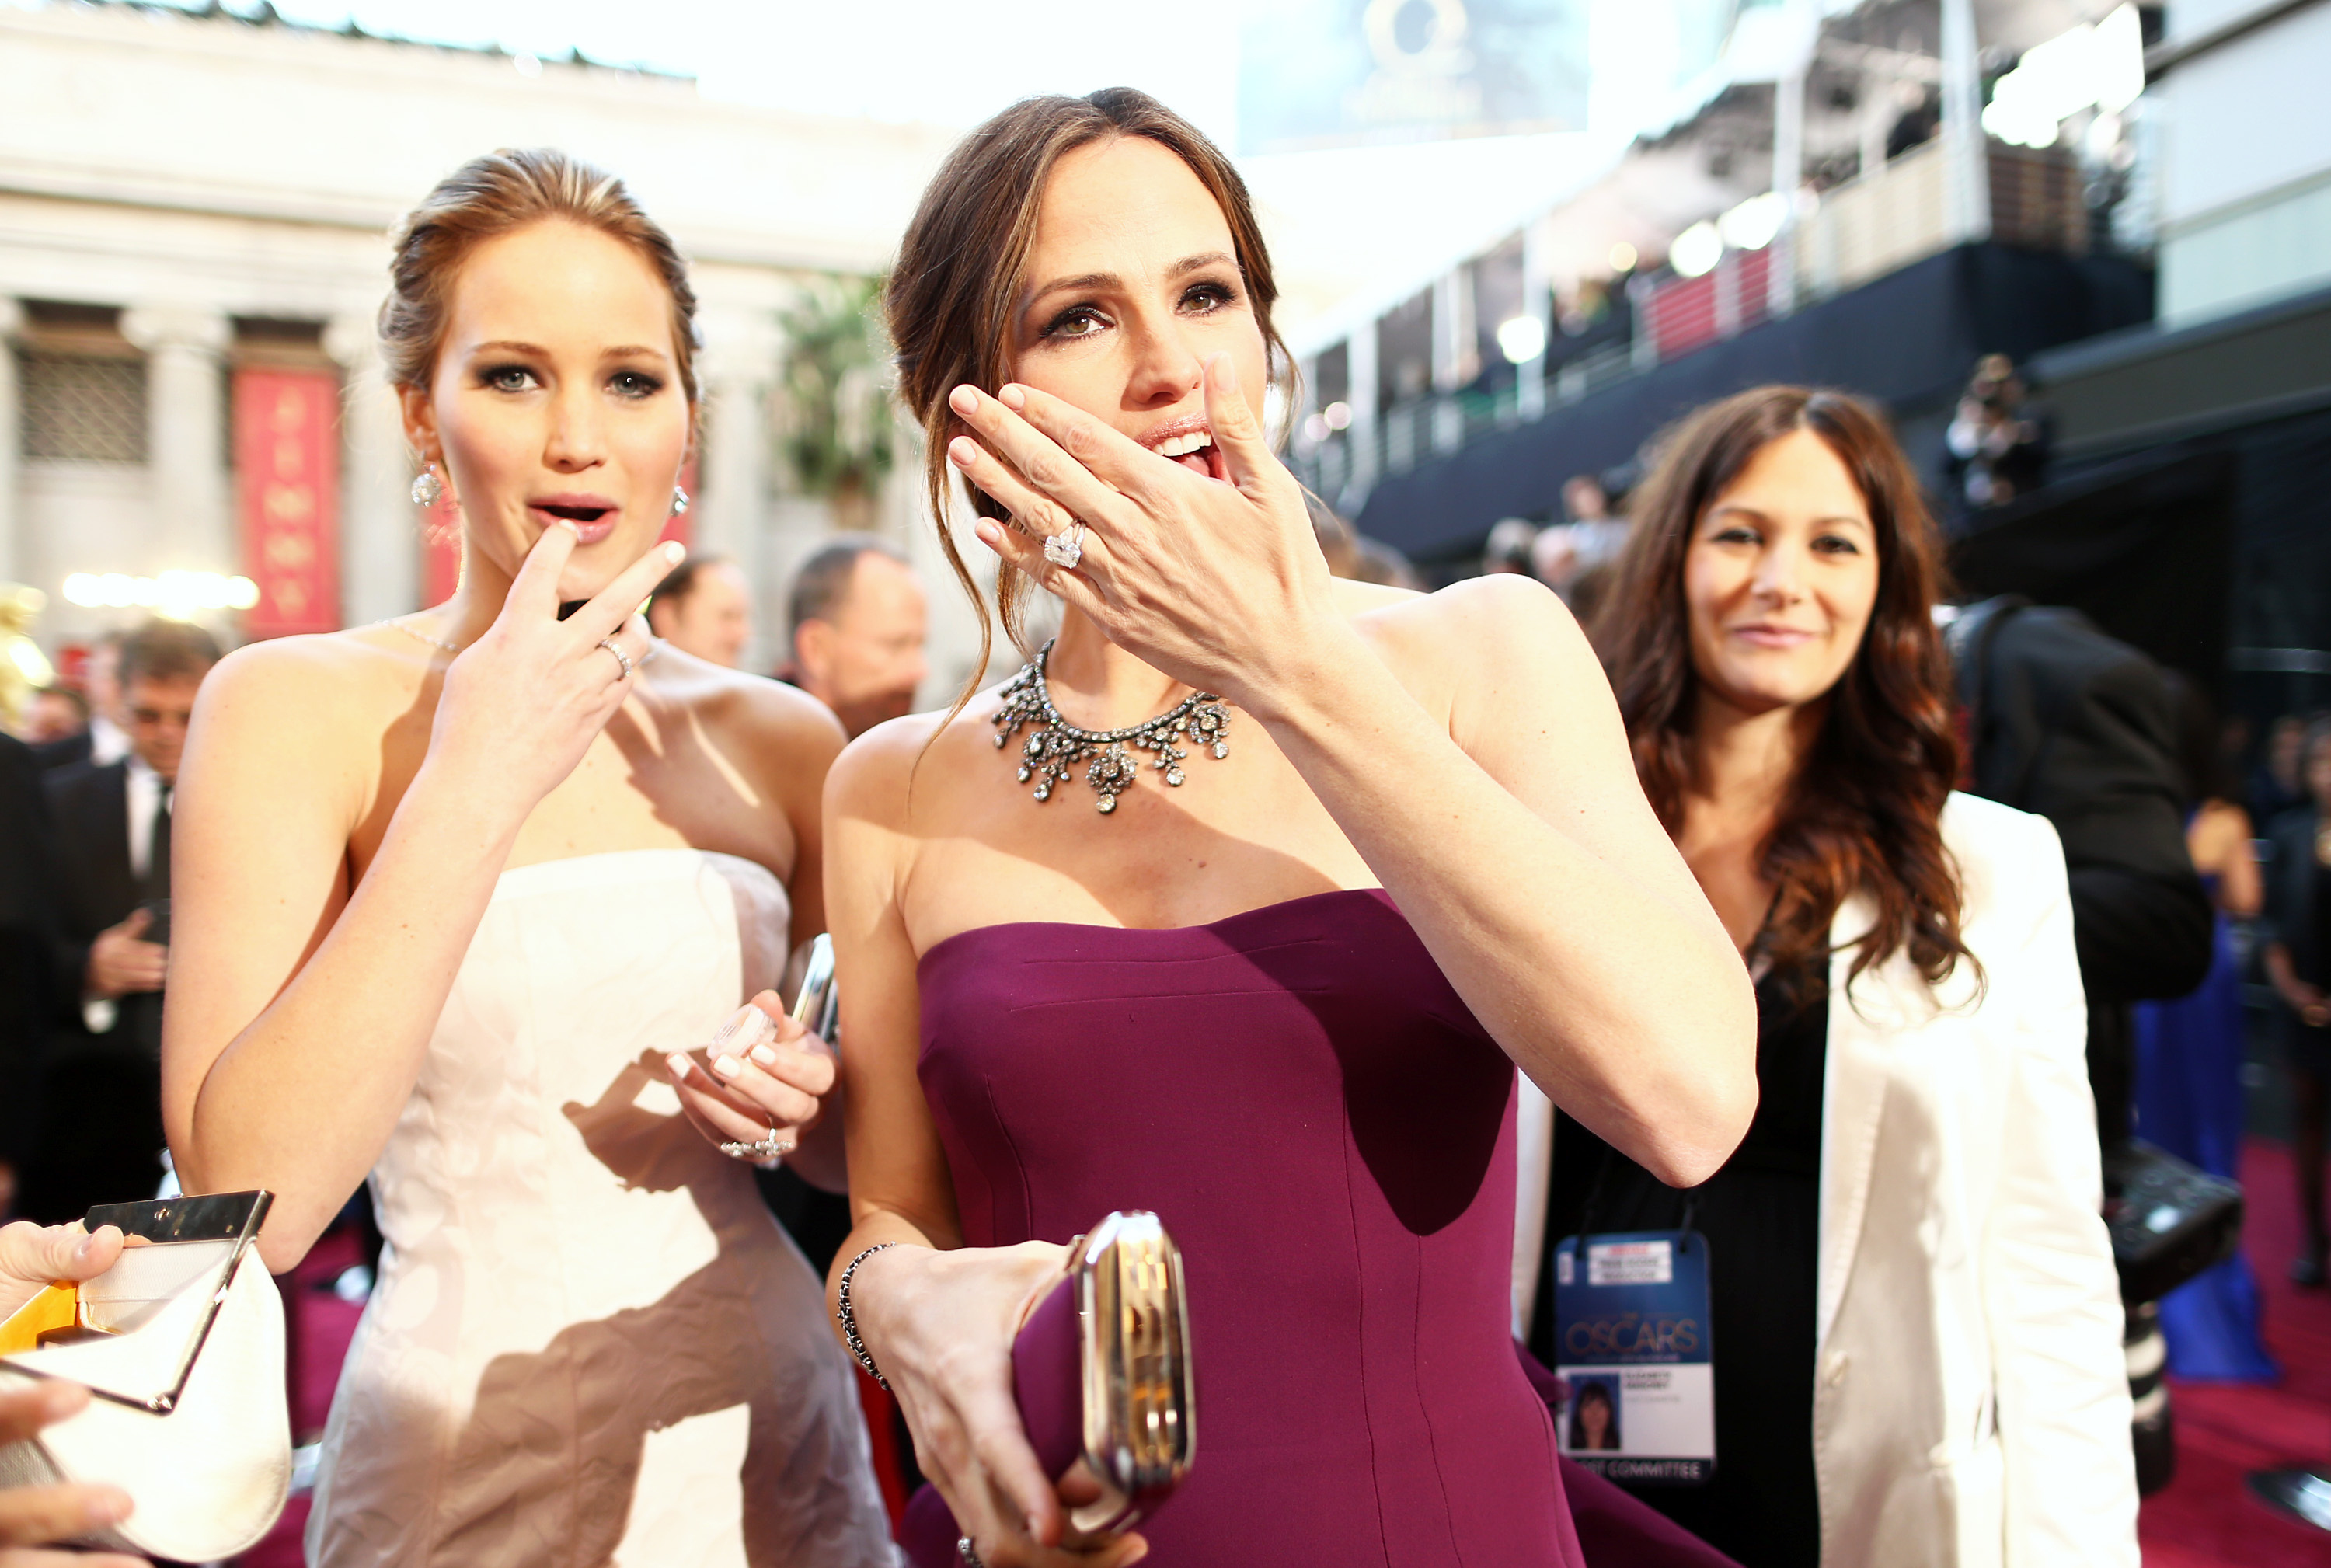 Jennifer Lawrence and Jennifer Garner had a candid moment.